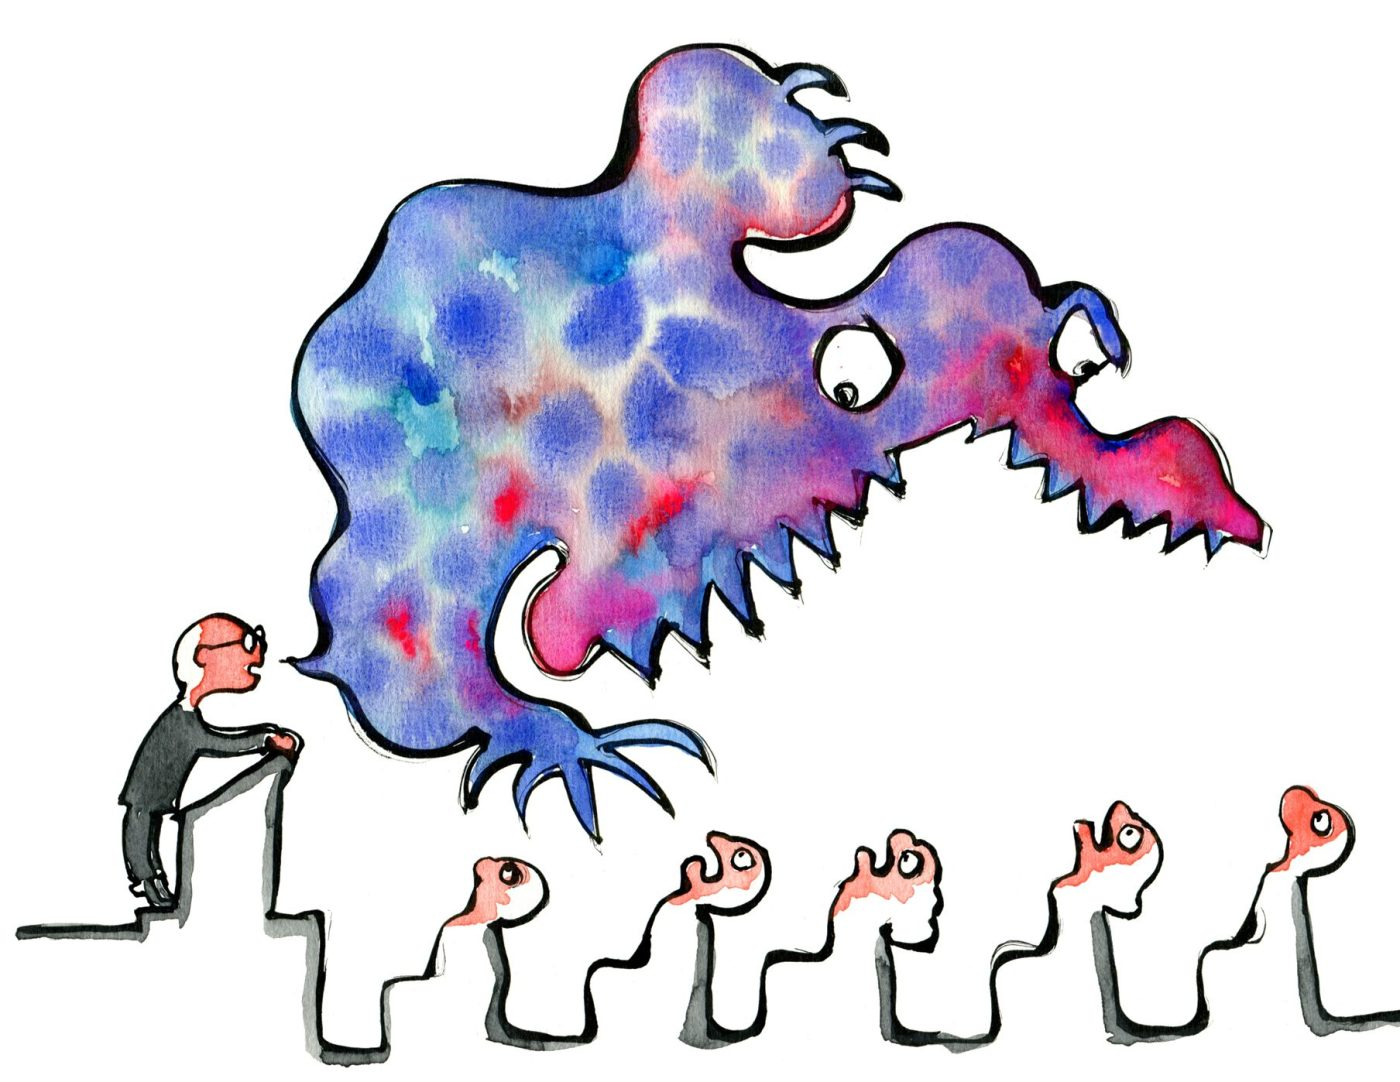 illustration of a speaker trying to monster scare people